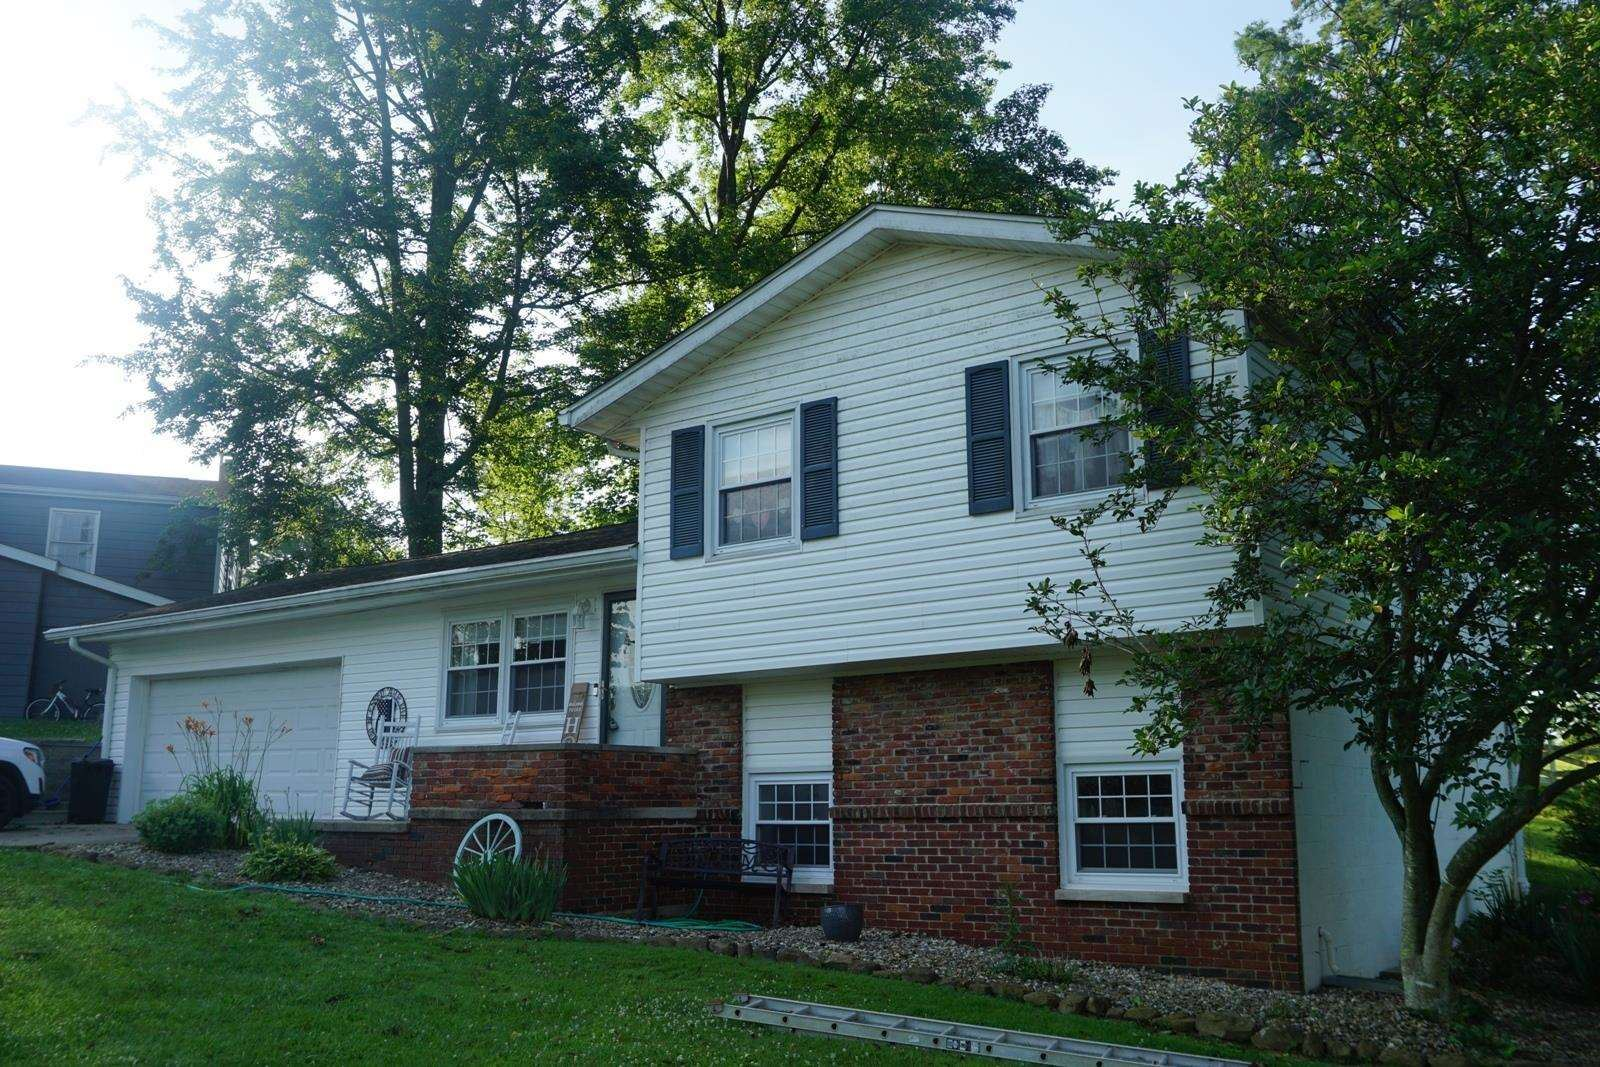 404 FOREST VIEW DR, Bedford, IN 47421 - #: 202105753